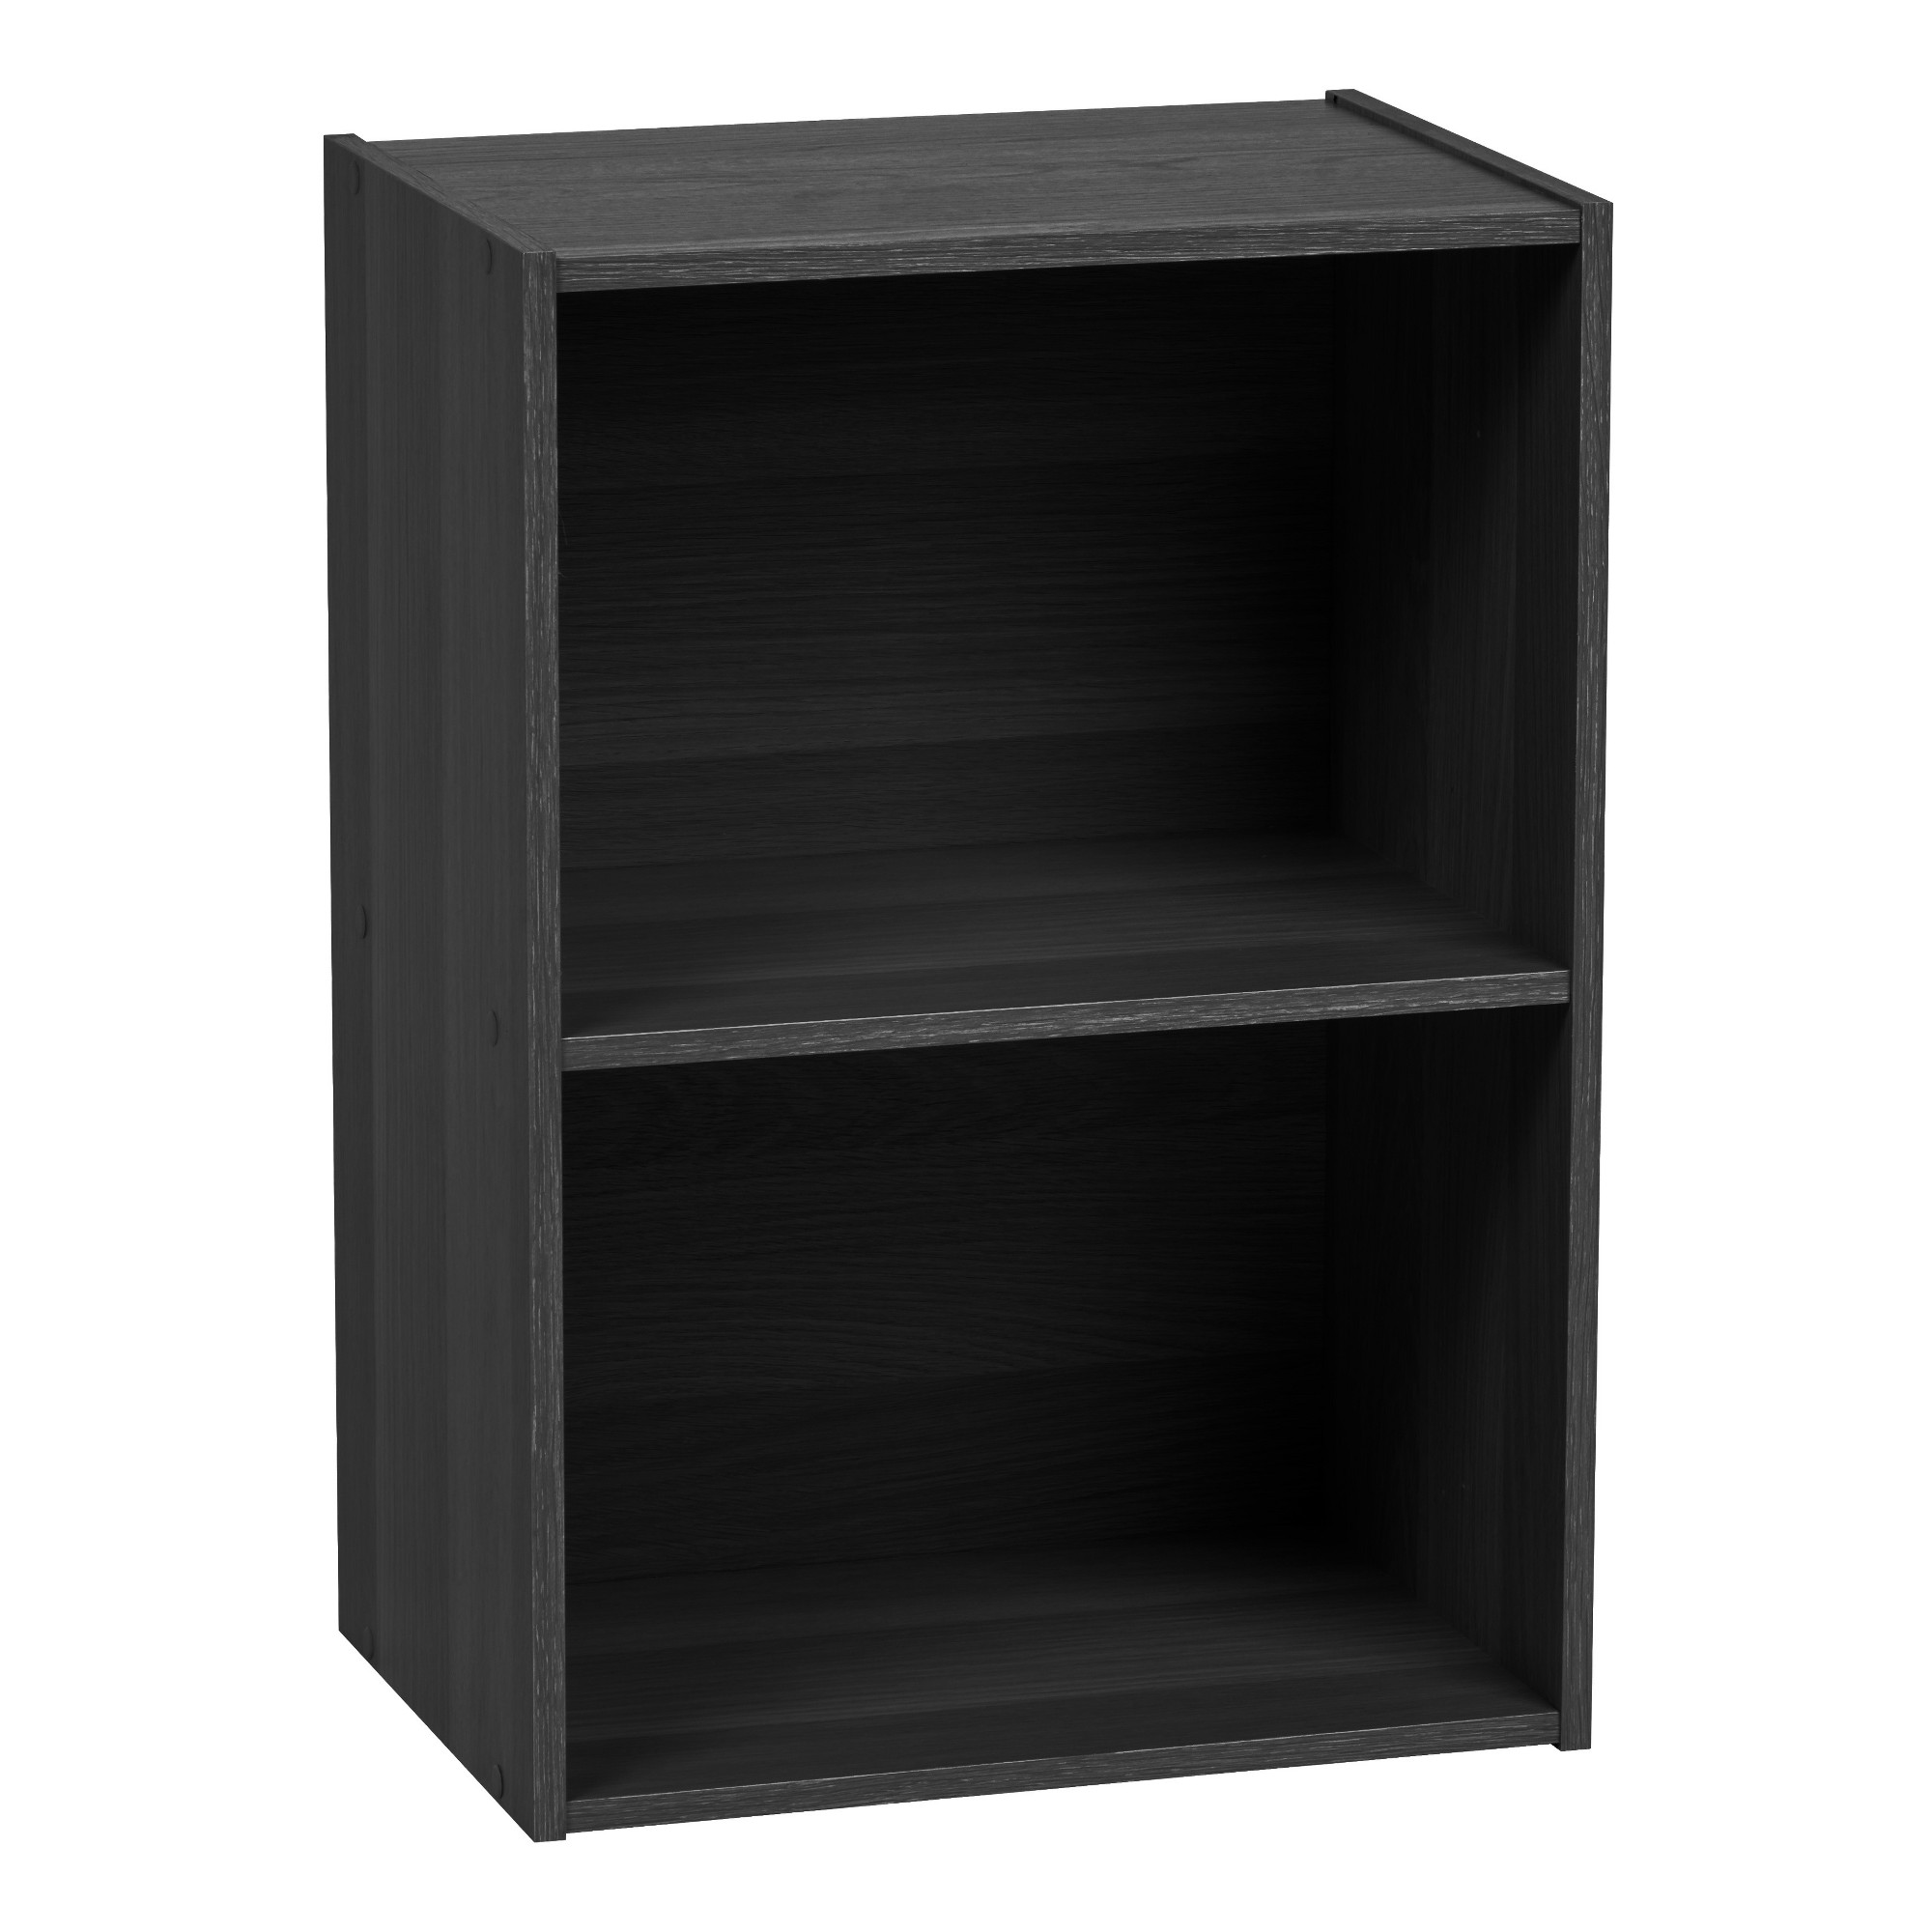 Utility Storage Shelves Iris, Black